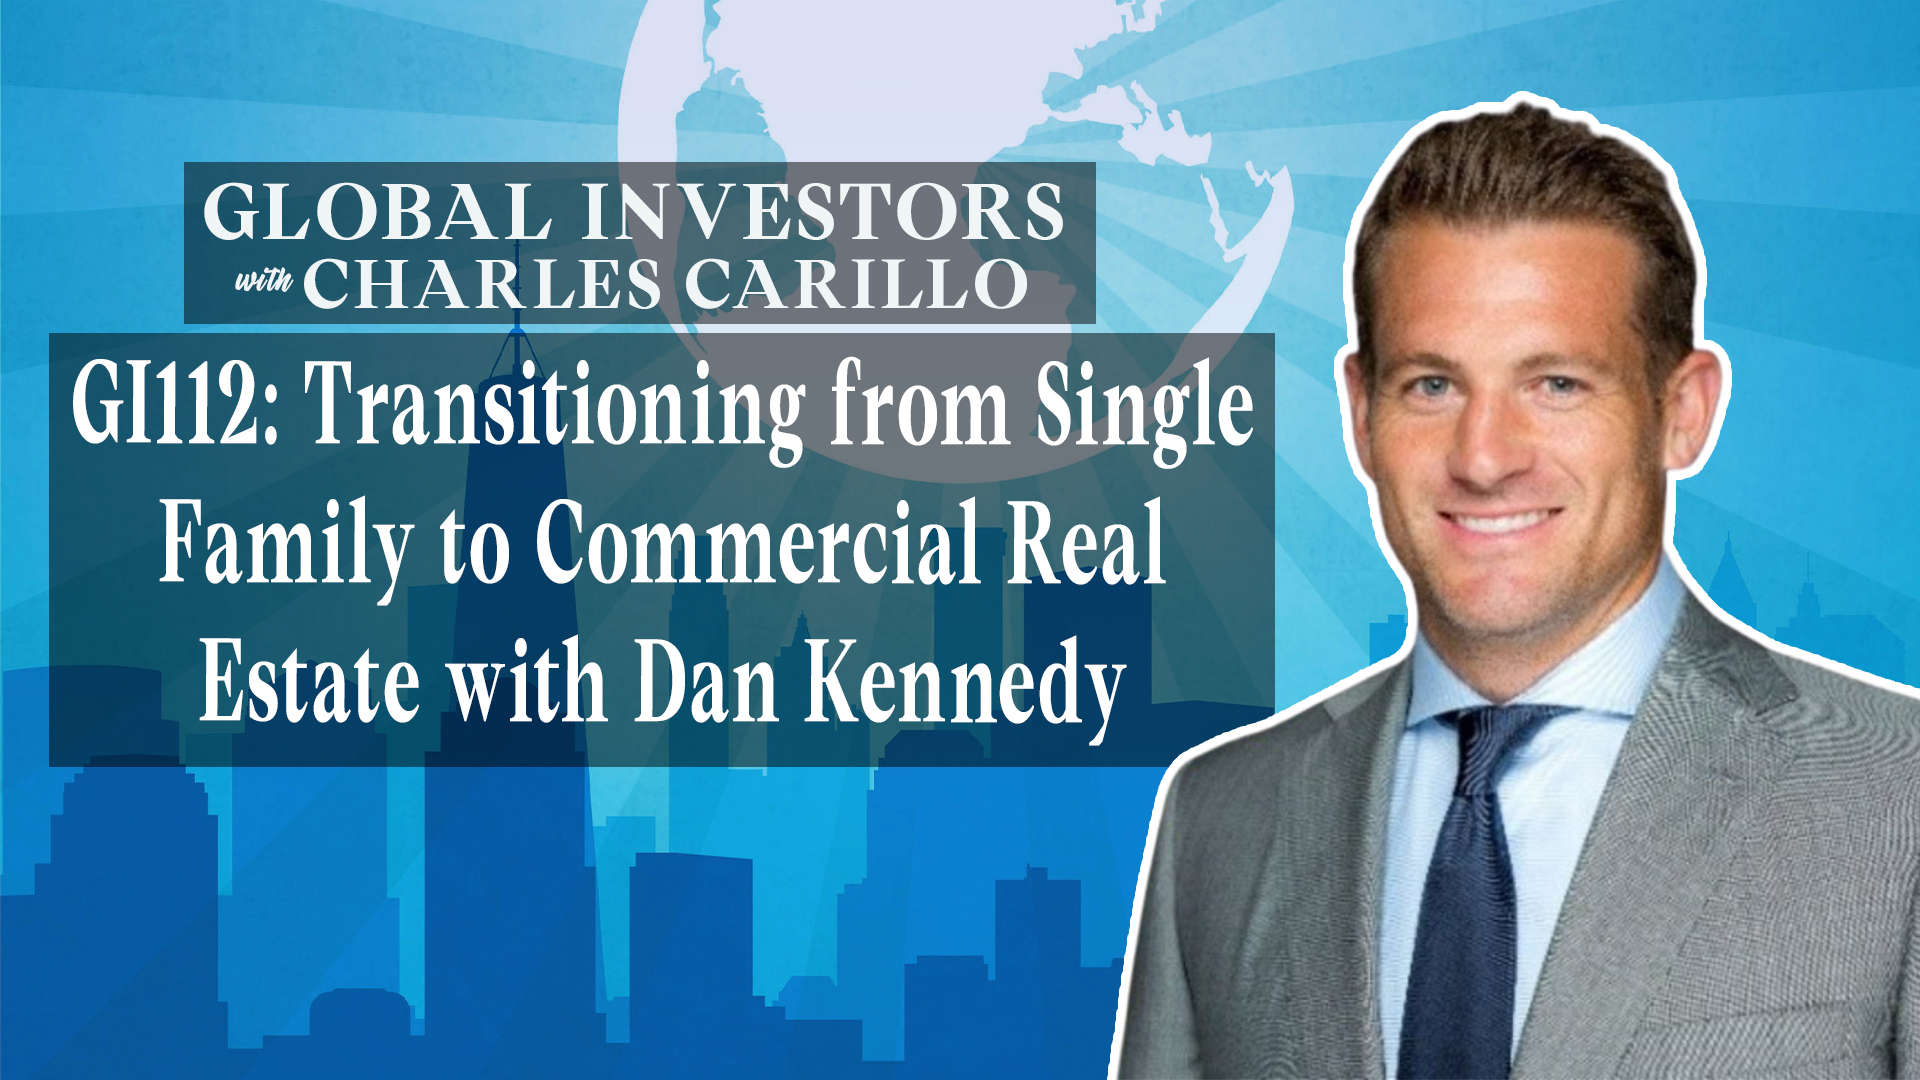 GI112: Transitioning from Single-Family to Commercial Real Estate with Dan Kennedy